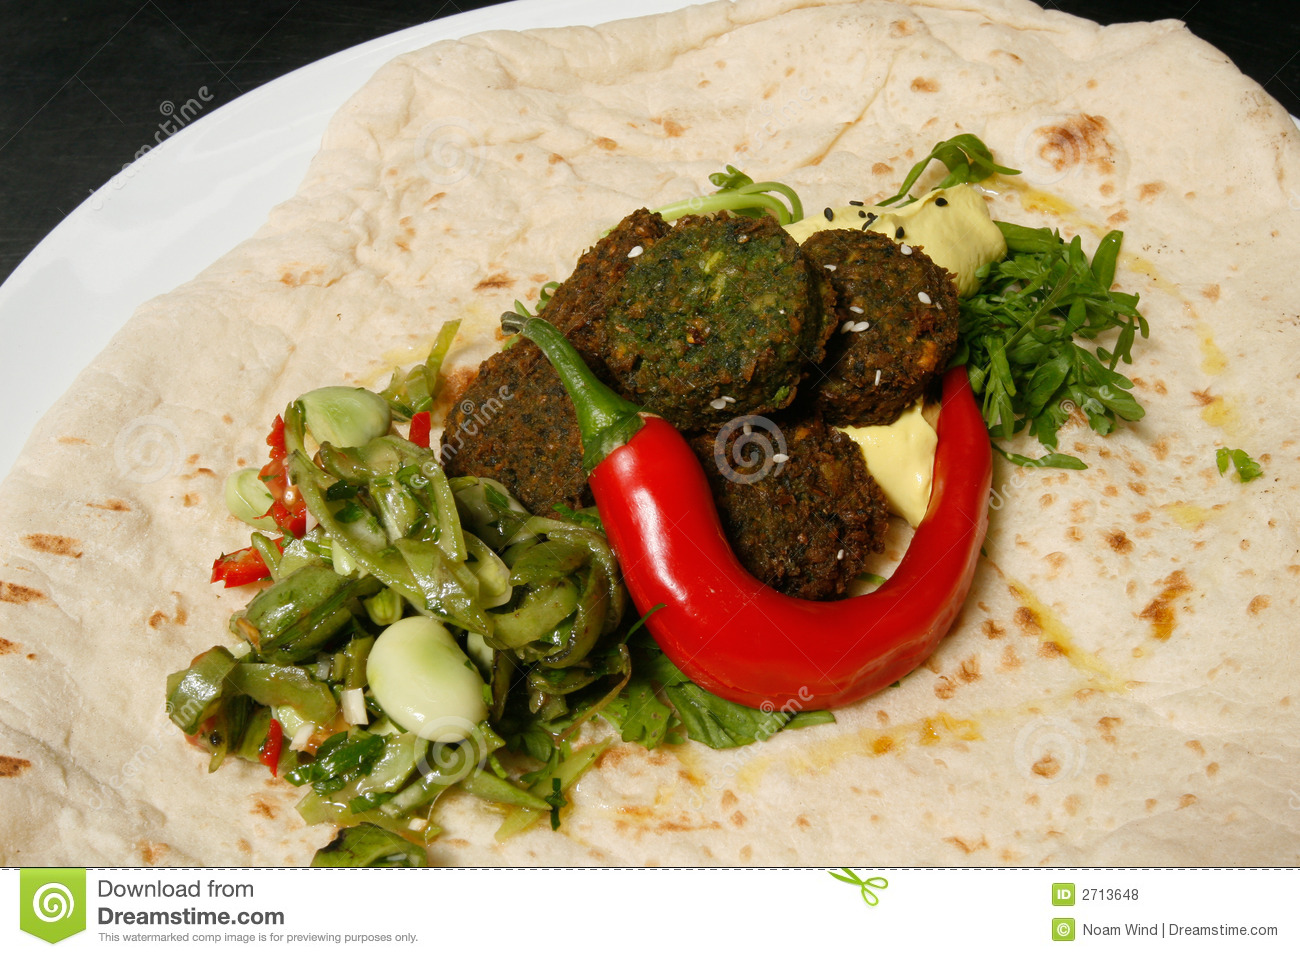 Gourmet falafel - famous middle eastern dish, with a stylish twist.